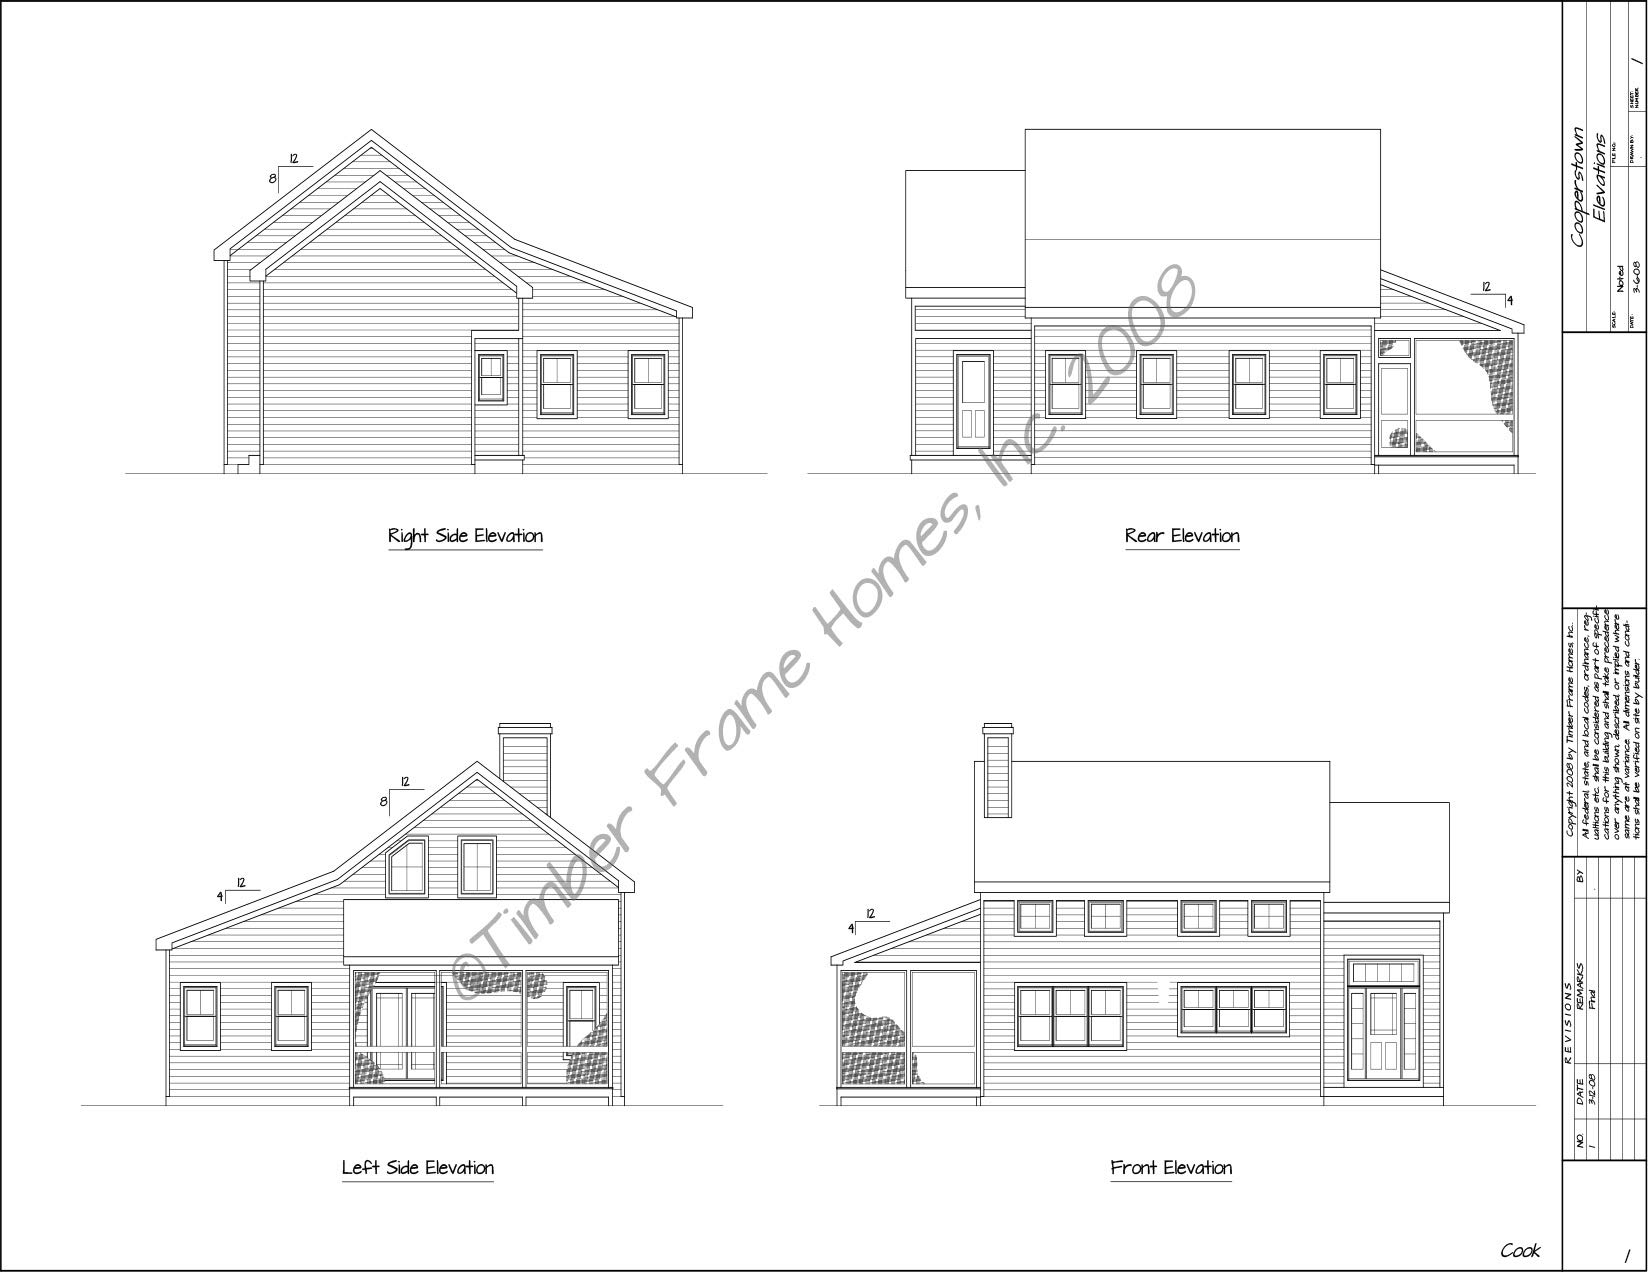 Home Plans - The Cooperstown Timber Frame (DESIGN PROOF) by TimberStead